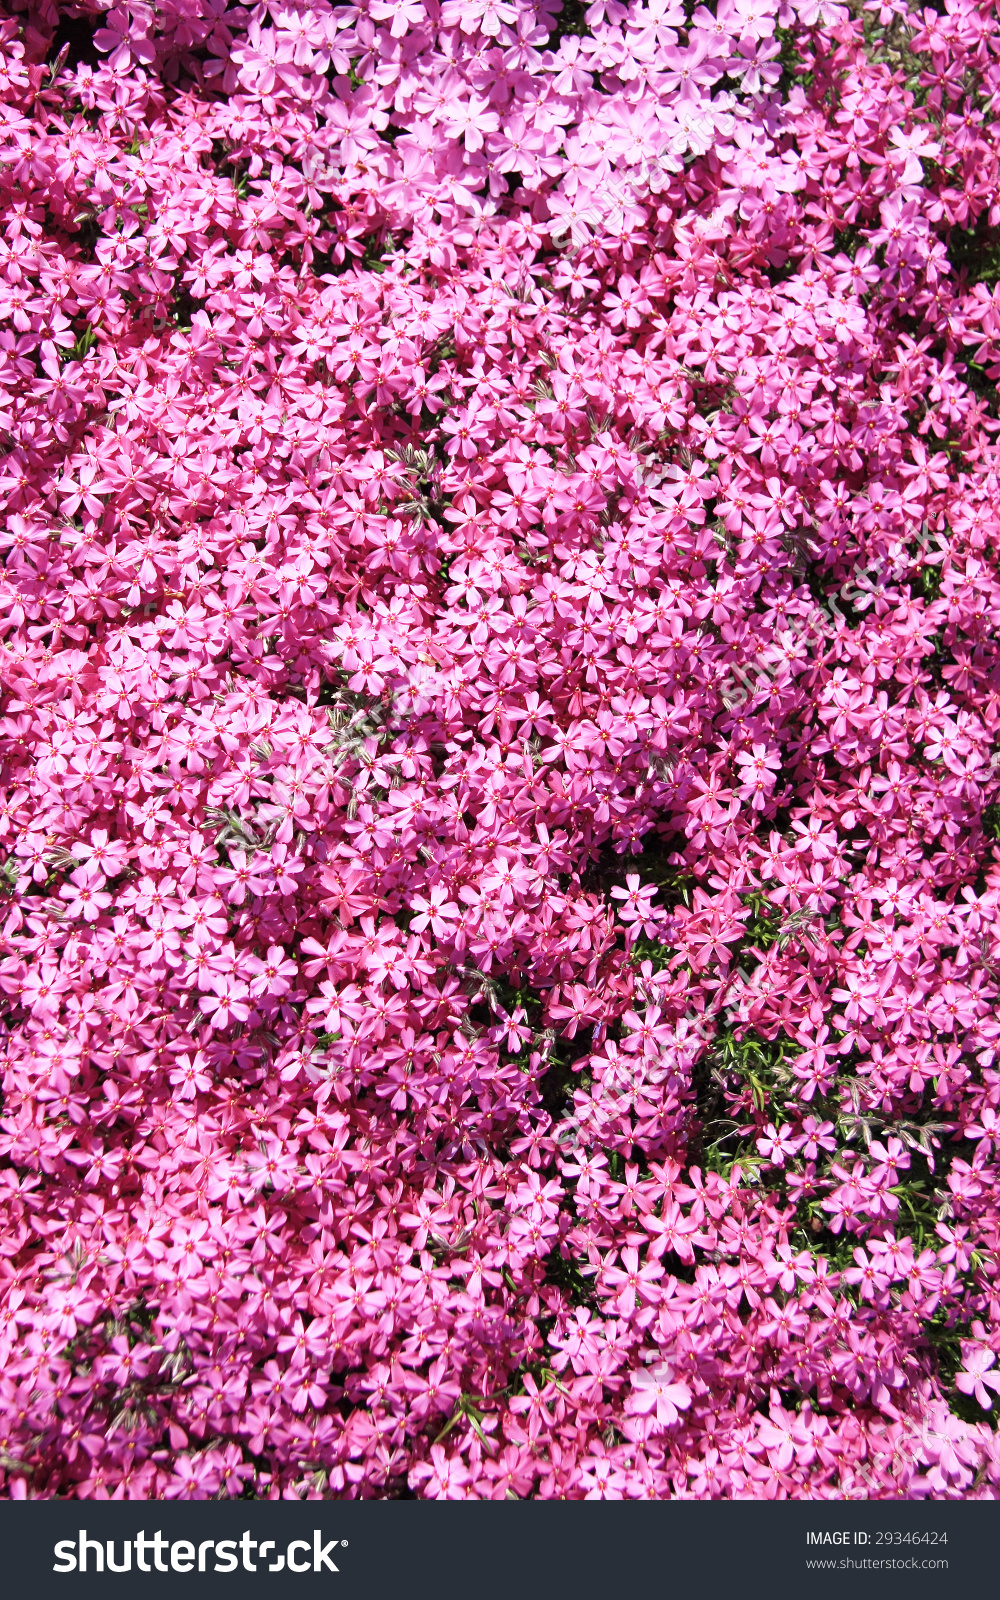 Background Of Pink Arabis Perennial Flowers. Stock Photo 29346424.